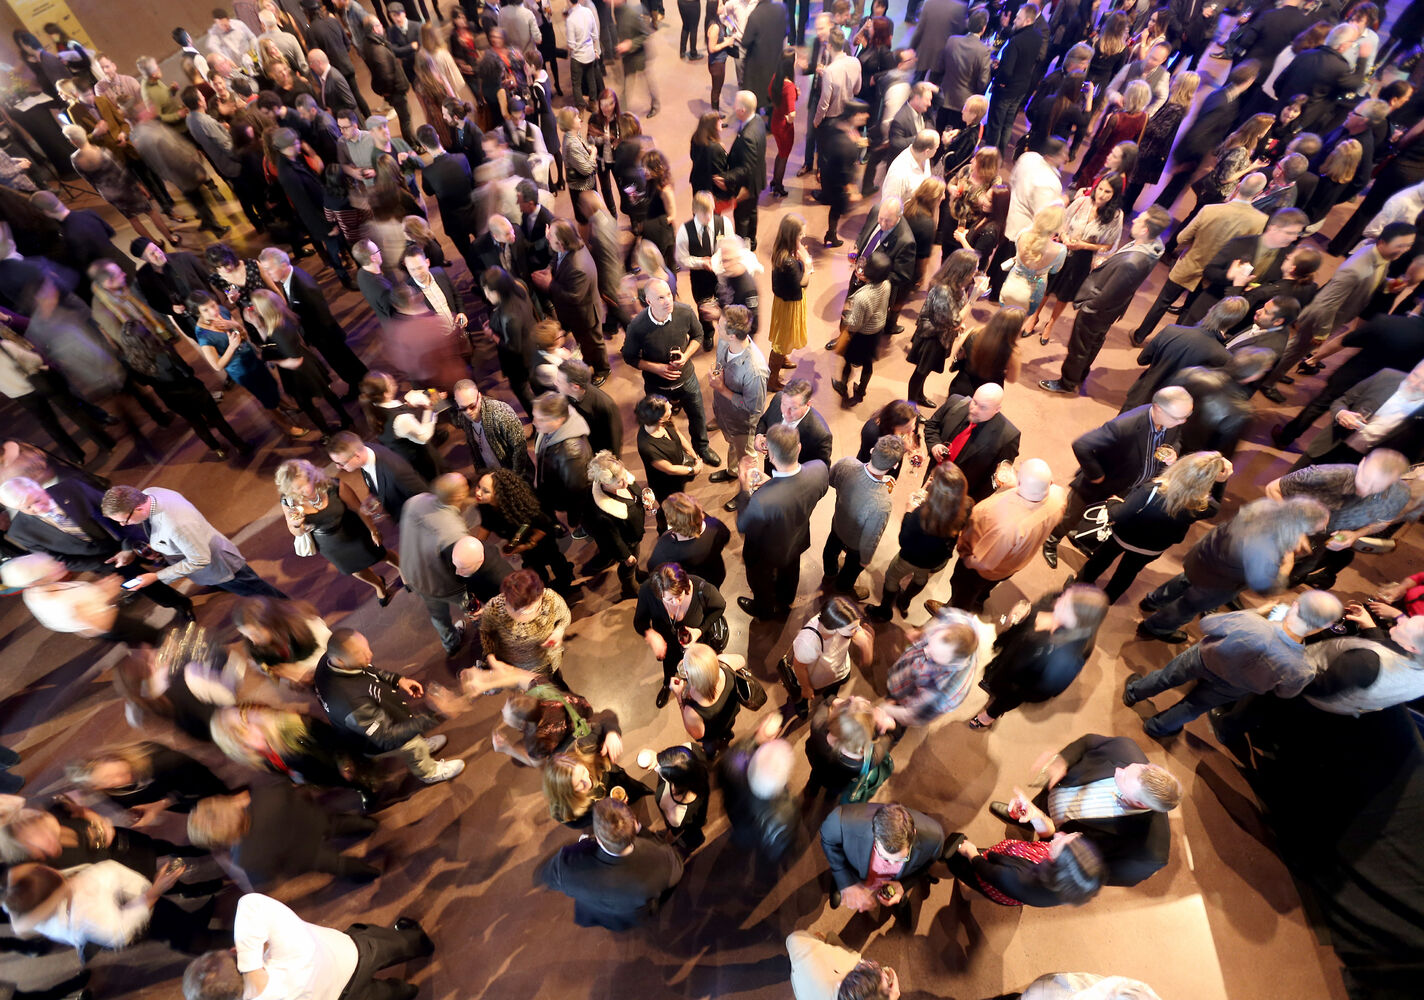 The crowd at the Juno Reception inside the Canadian Museum for Human Rights on Friday. (Trevor Hagan / Winnipeg Free Press)